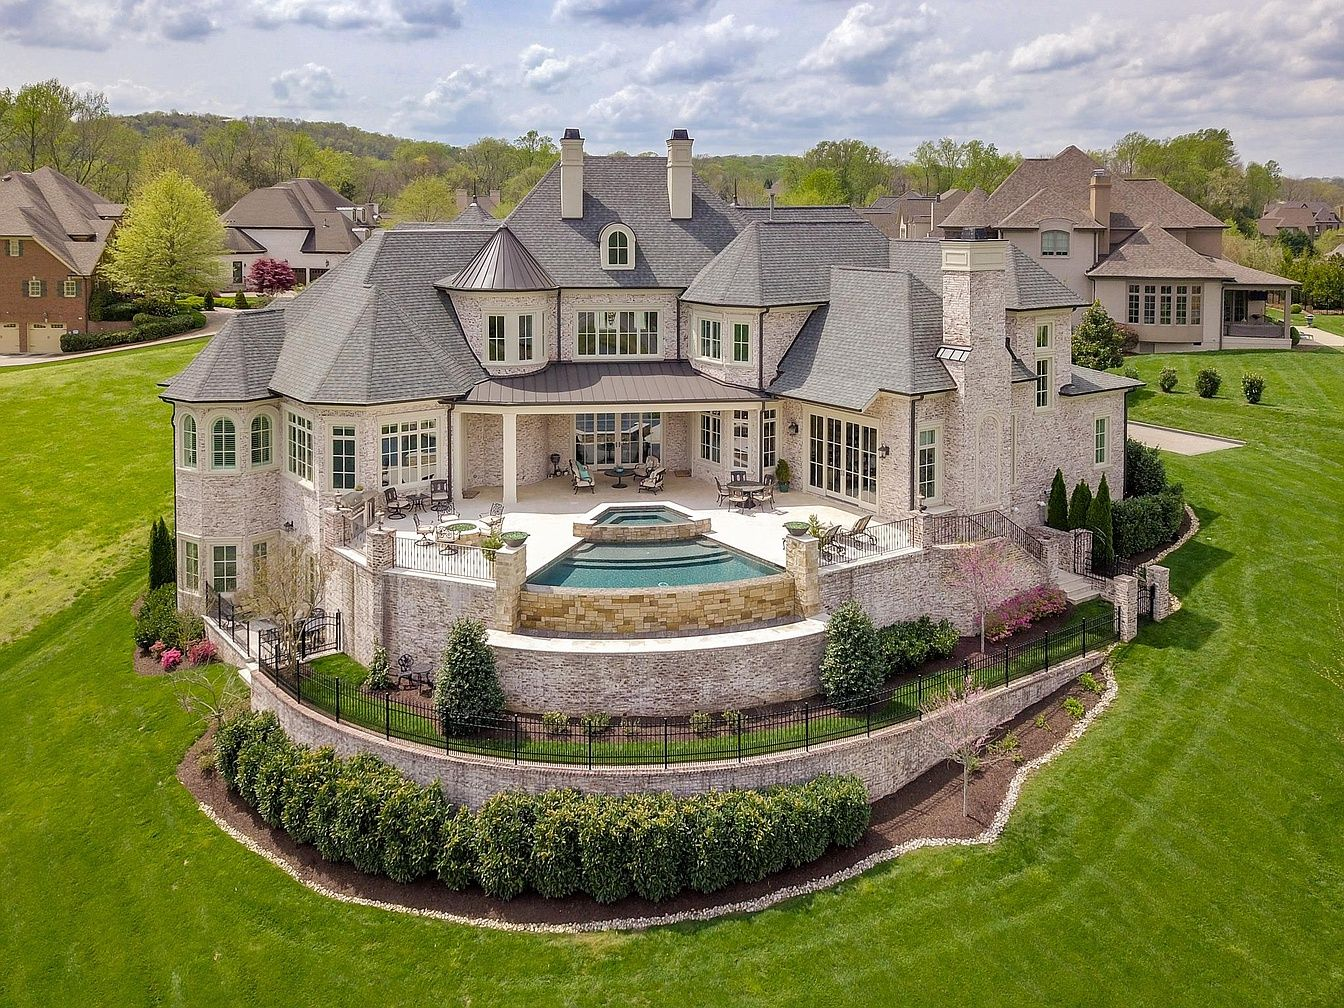 12 Spyglass Hl Brentwood Tn 37027 Mls 2031872 Zillow House And Home Magazine Mansions Mega Mansions